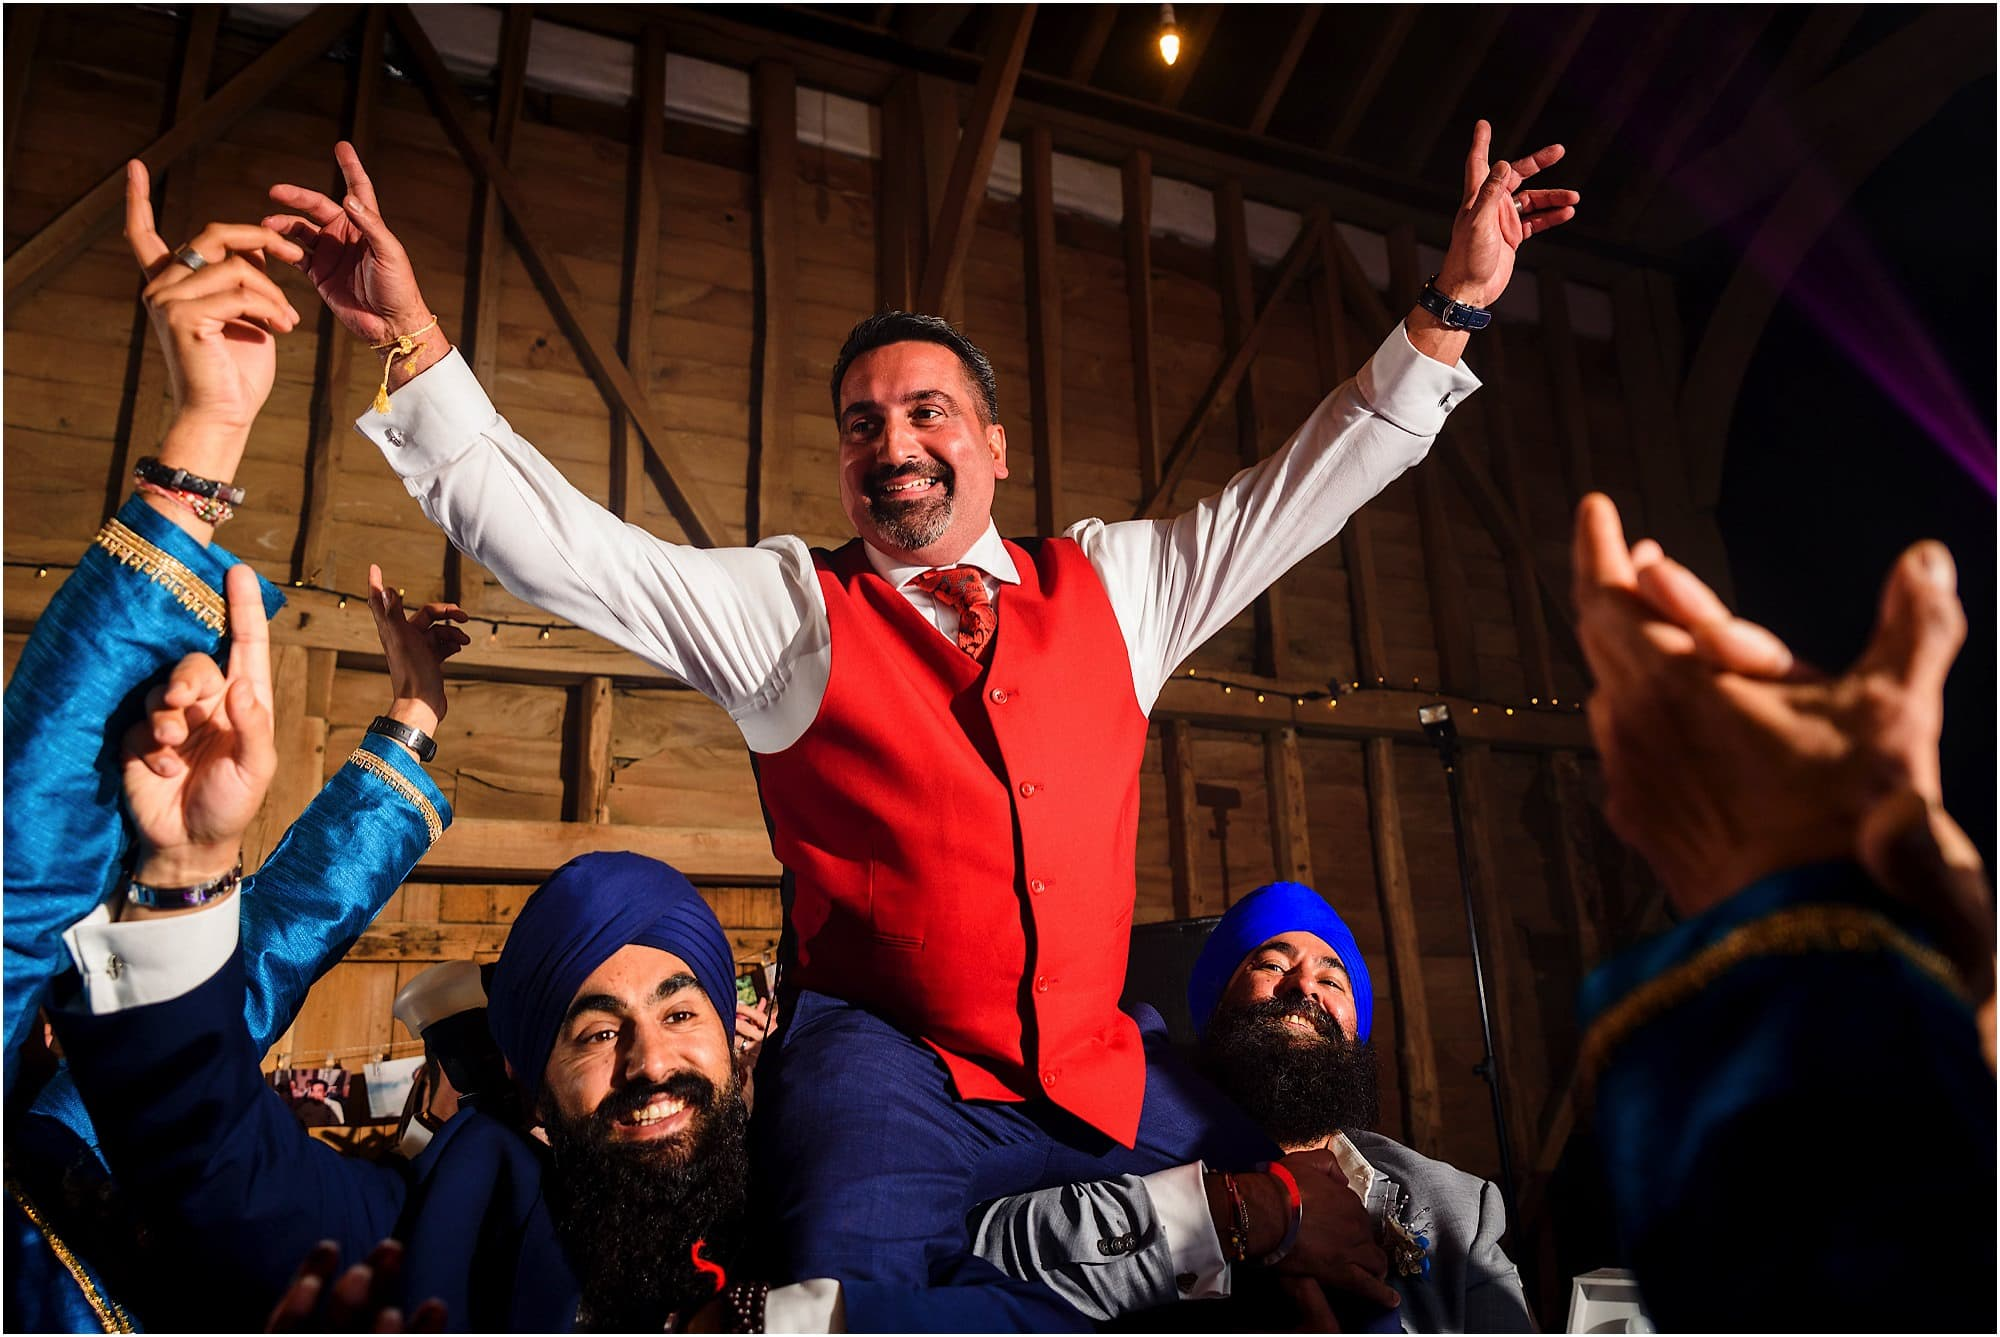 Groom lifted up on shoulders, having the time of his life at Childerley